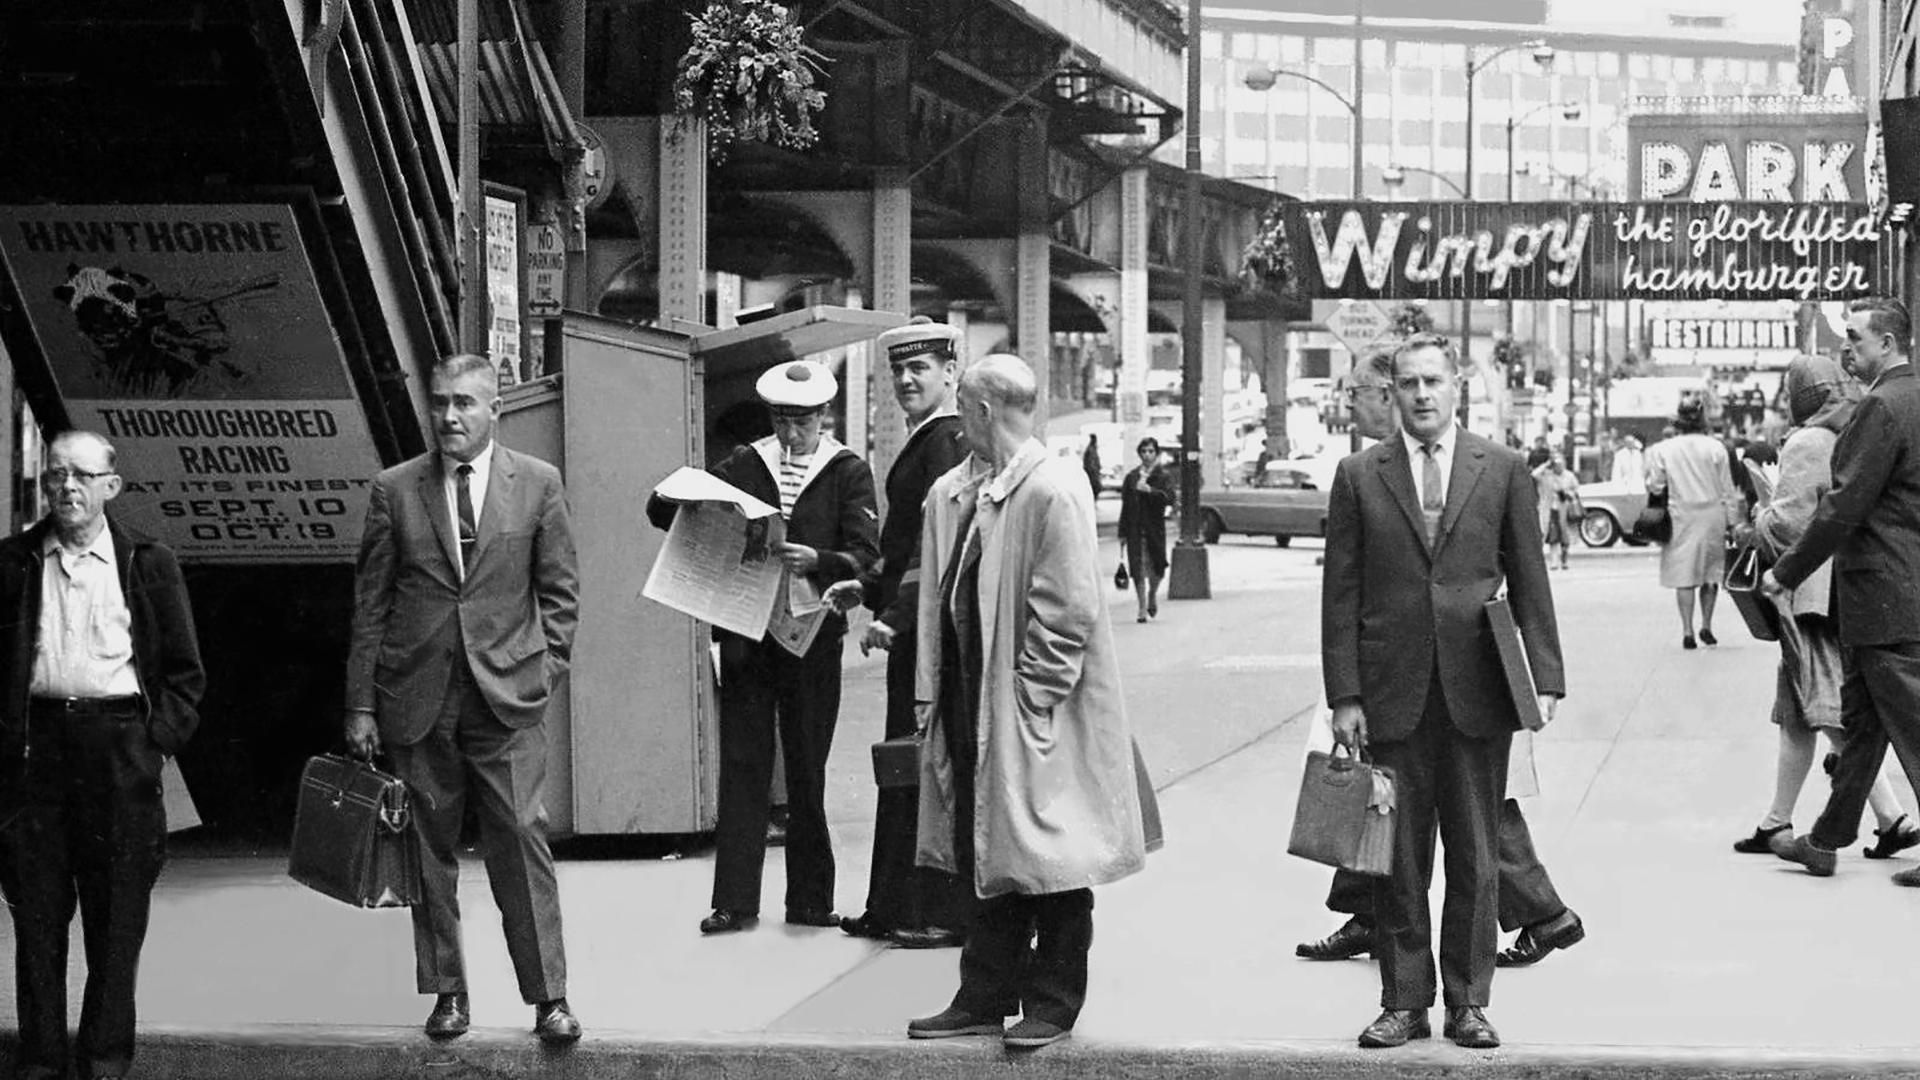 Washington Wabash In The 60 S Notice Wimpy S Hamburger In The Background Chicago Photos Wabash Chicago History